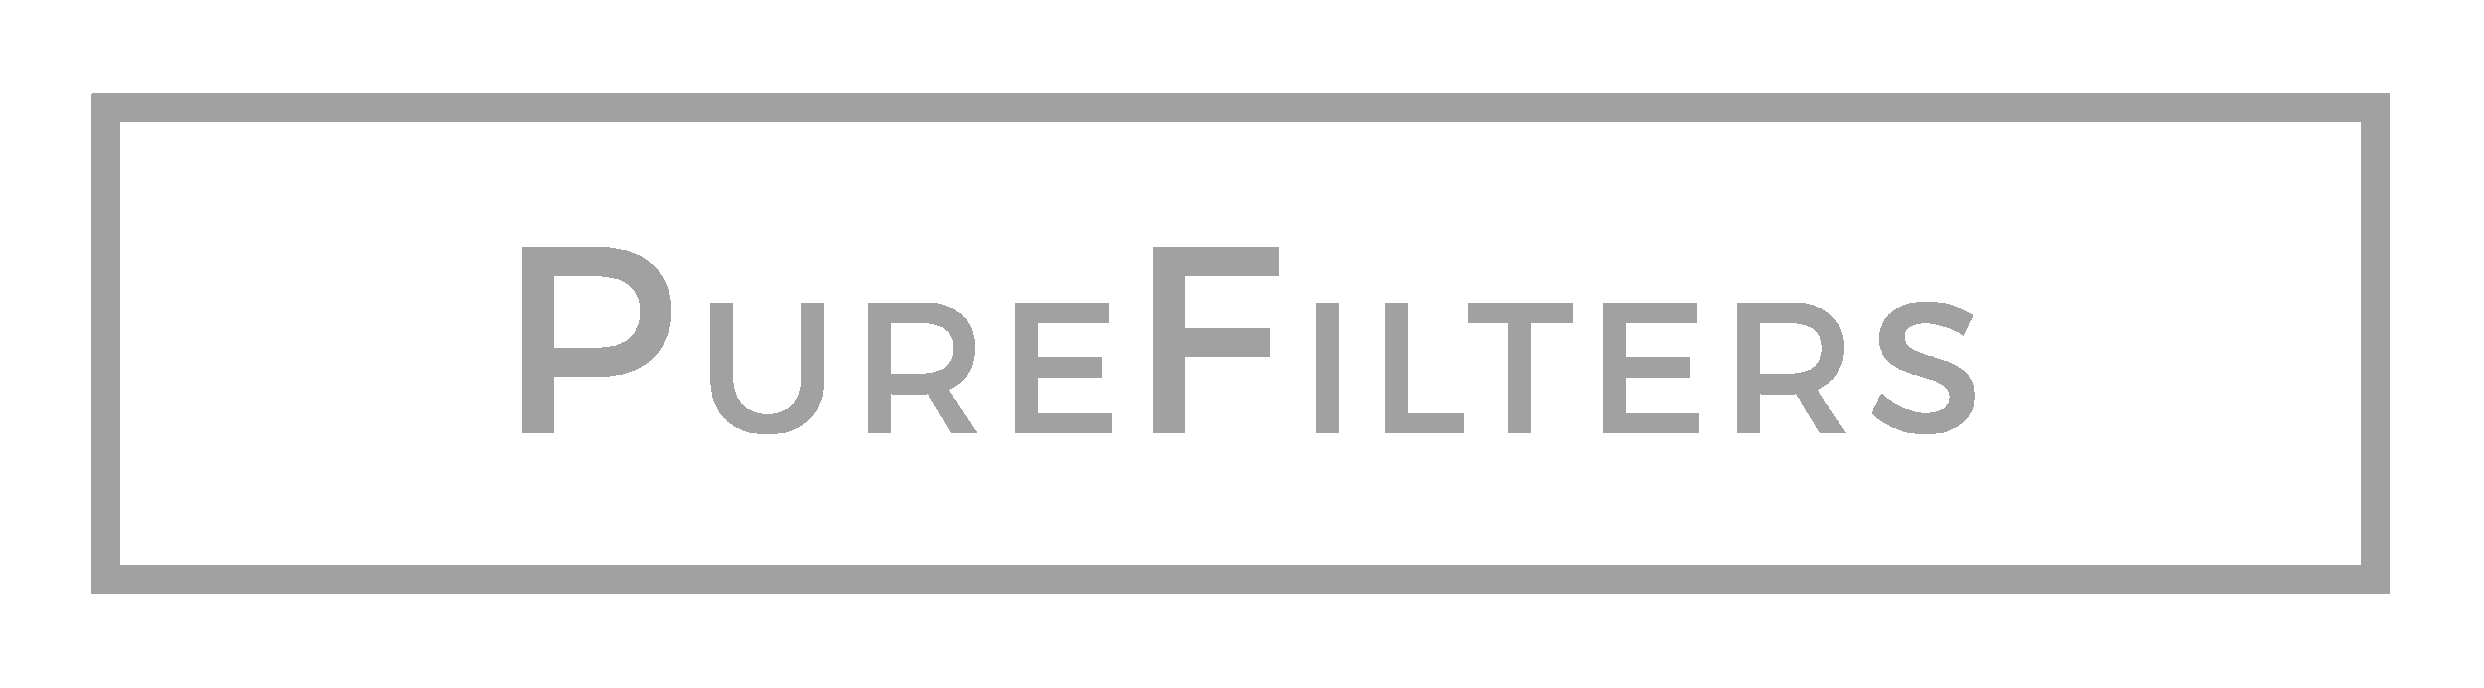 PureFilters Grey Scaled